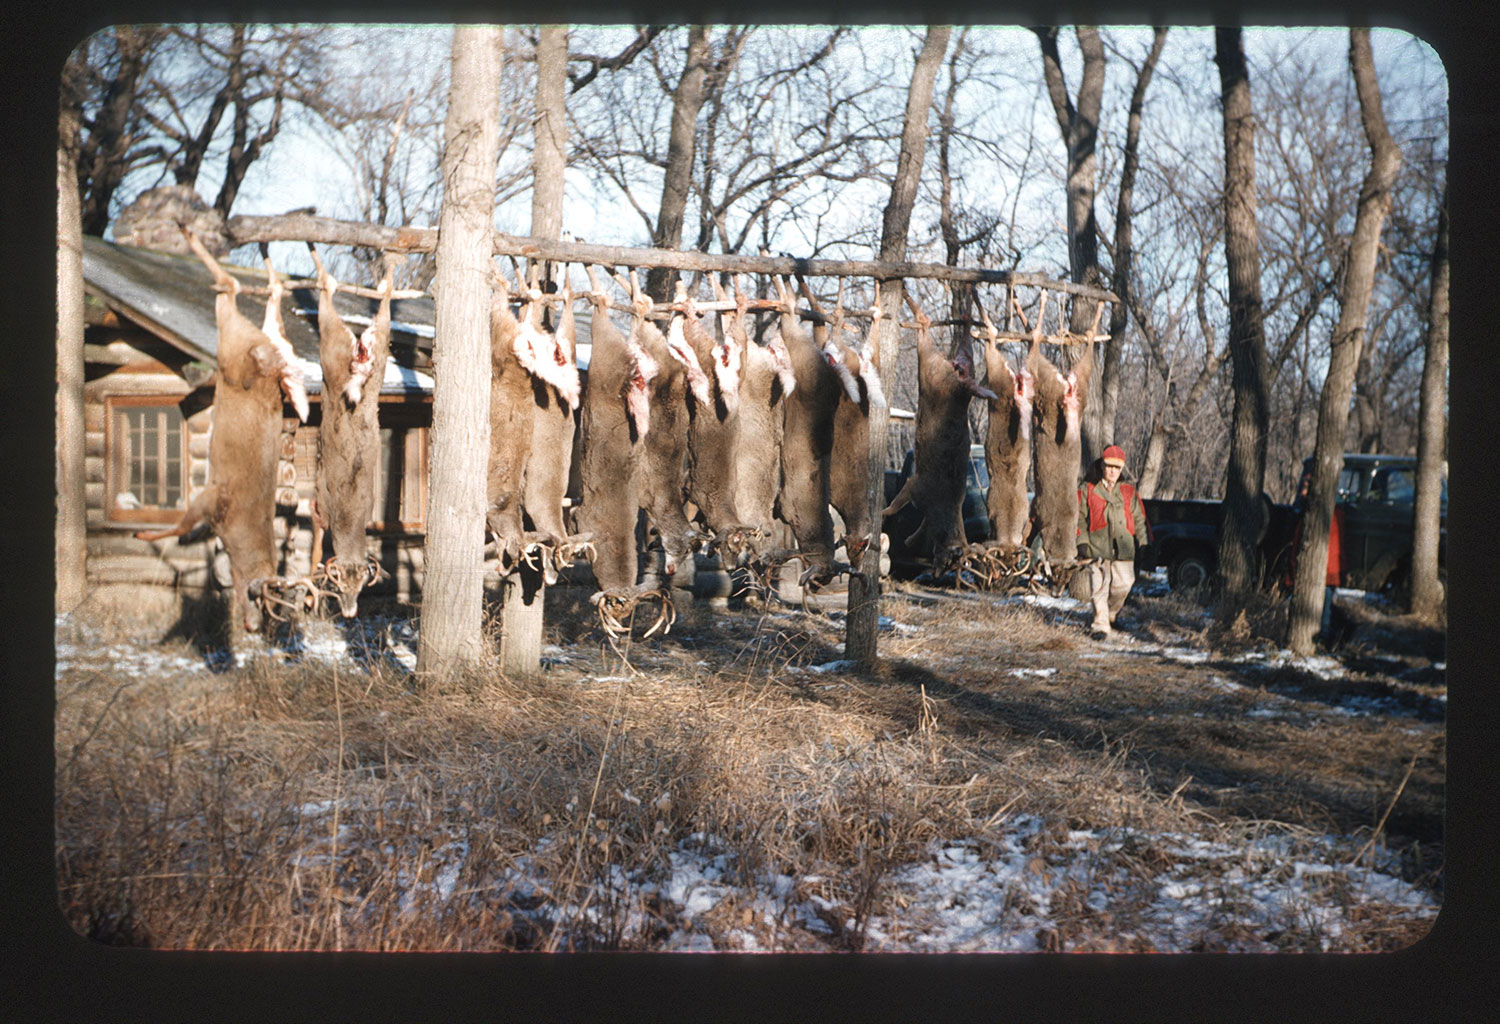 1939 Kodachrome transparency of deer hanging from wooden rack